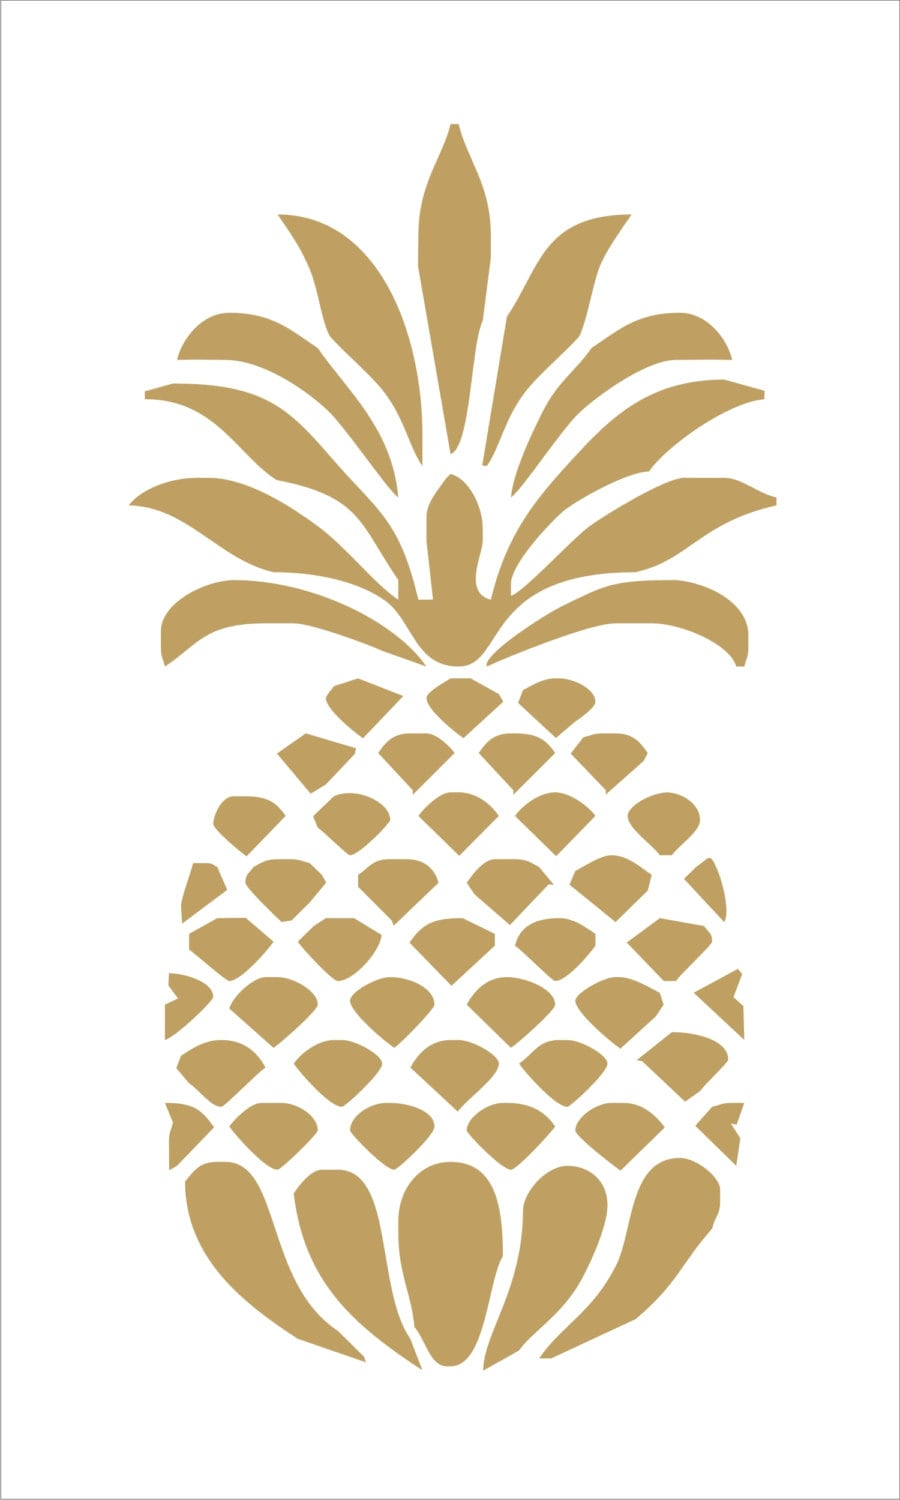 It's just an image of Witty Pineapple Stencil Printable